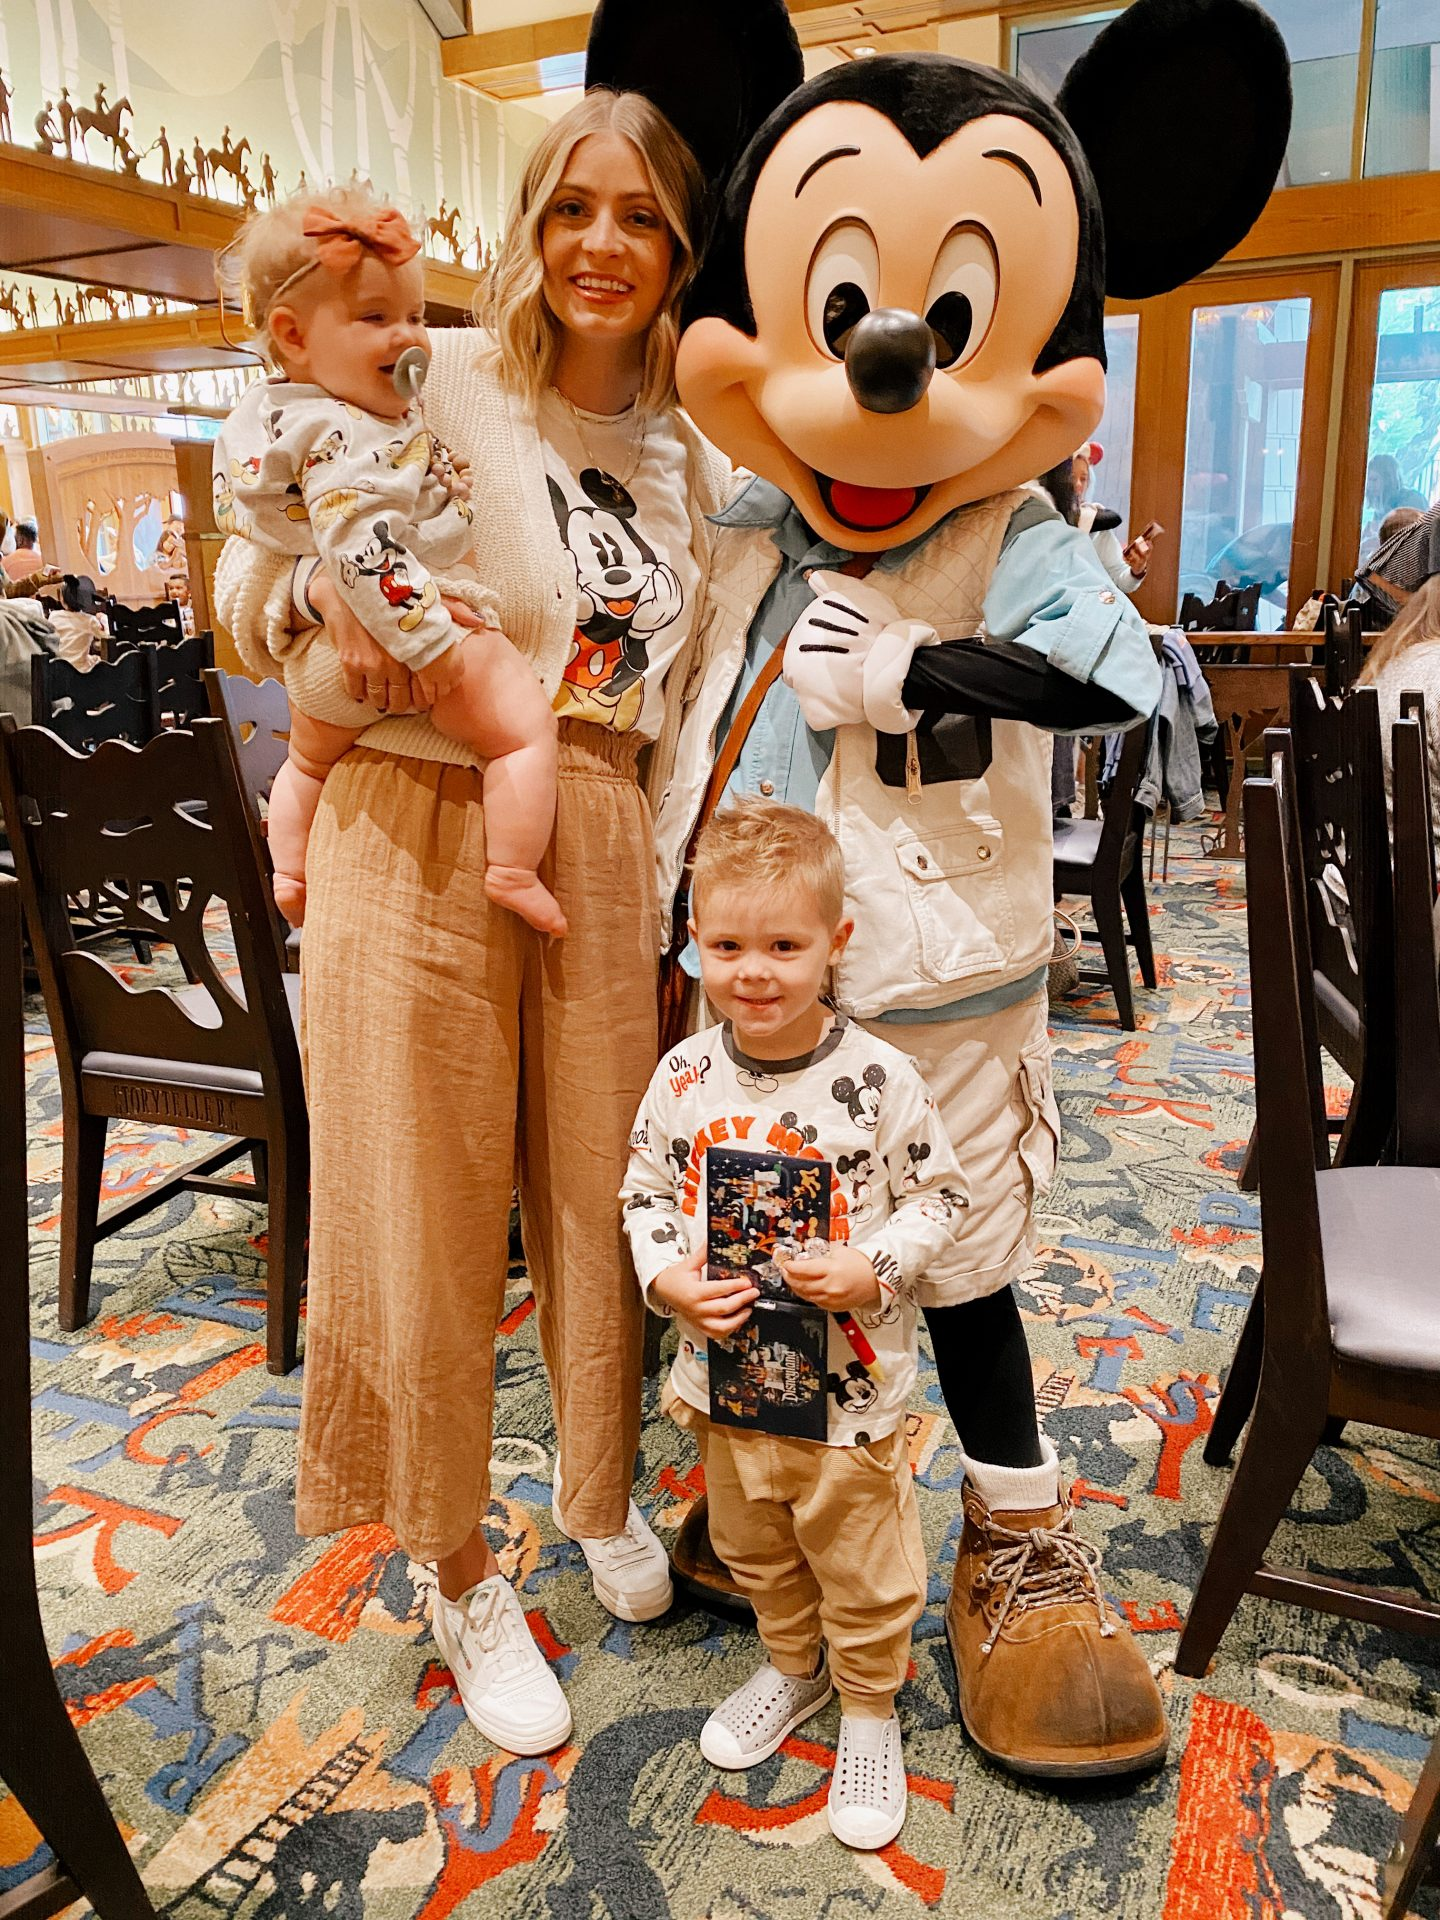 TOP 10 BEST DISNEYLAND TIPS FOR YOUR FAMILY featured by top San Diego blog, Navy Grace | Disneyland Tips by popular San Diego lifestyle blog, Navy Grace: image of a mom and her her two kids standing next to Mickey Mouse at Disneyland.